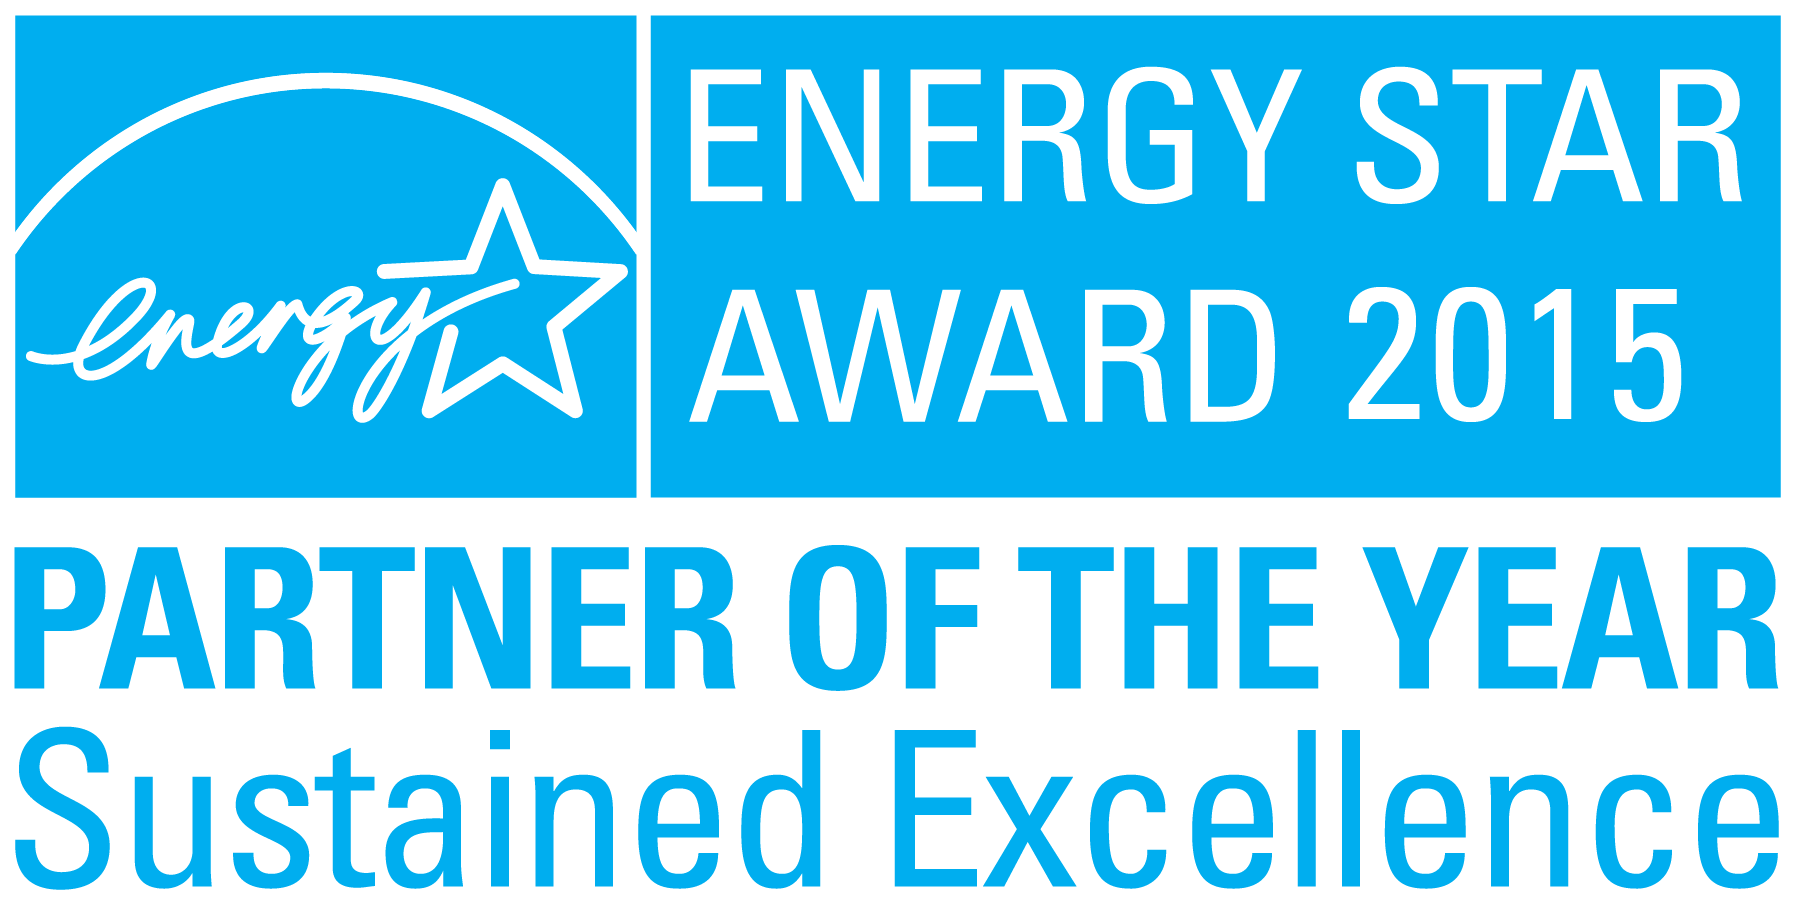 Energy Star Award